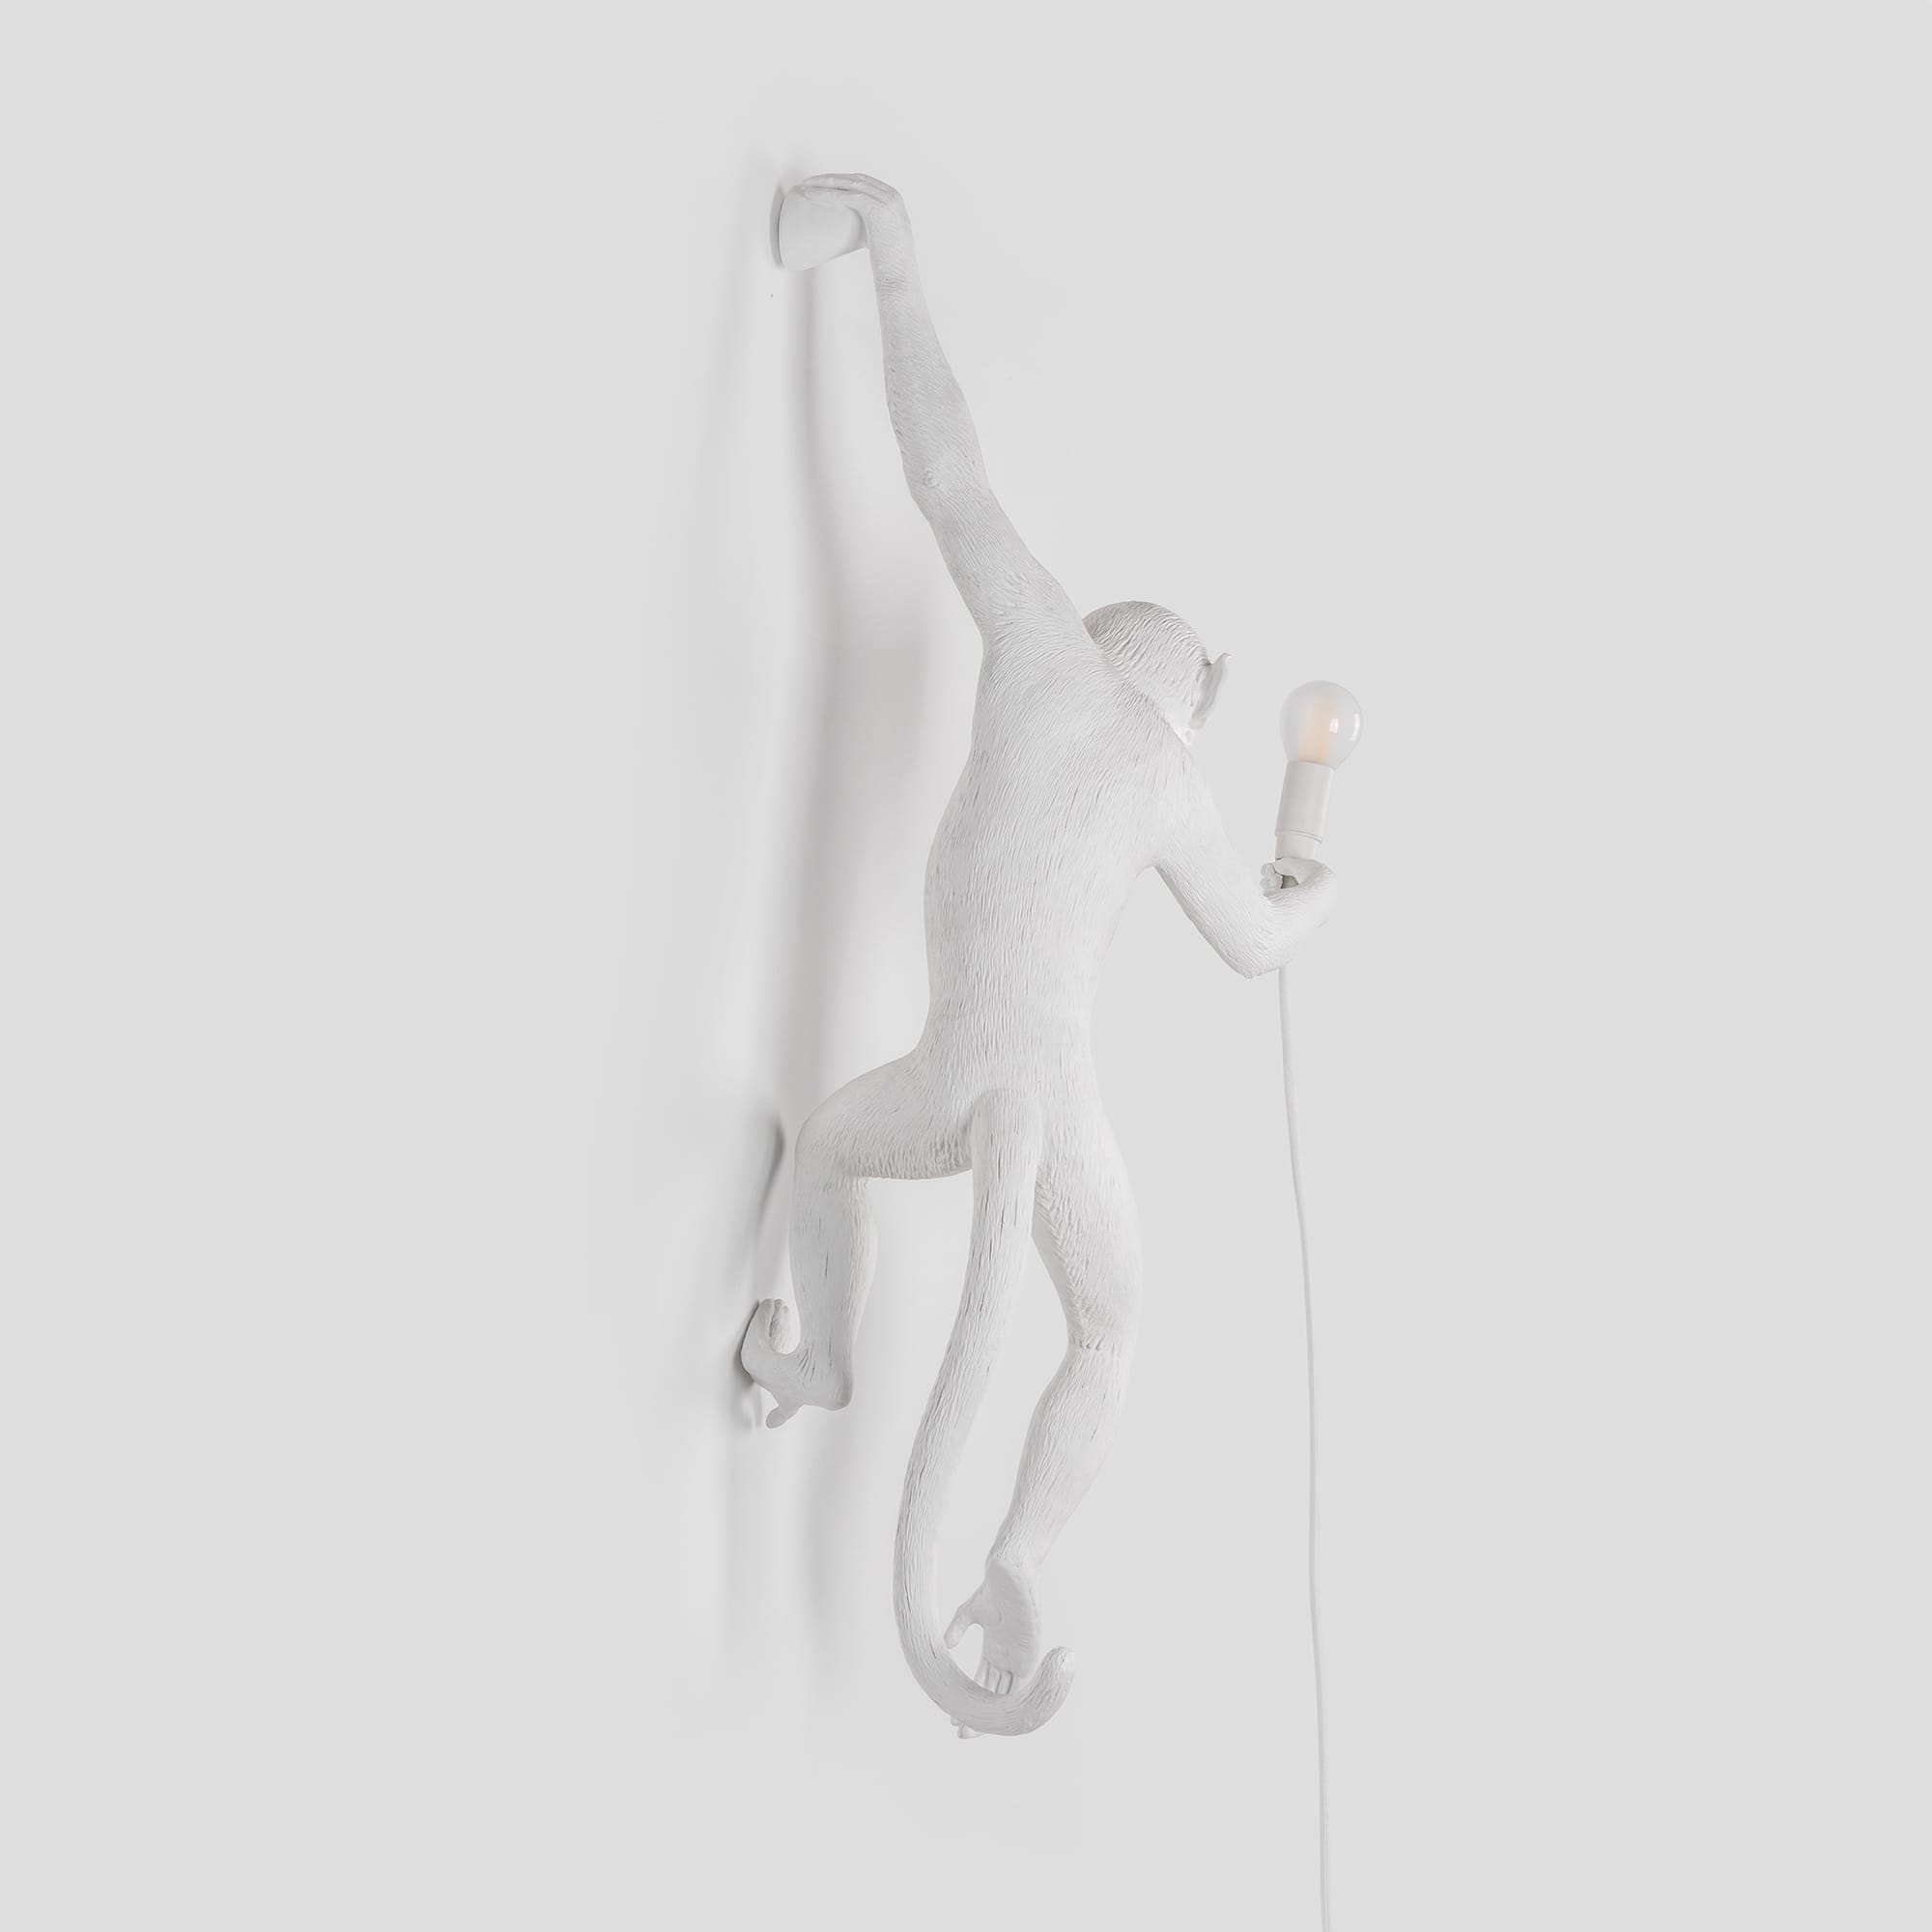 Lamp Seletti The Monkey Hanging Version Interior Design